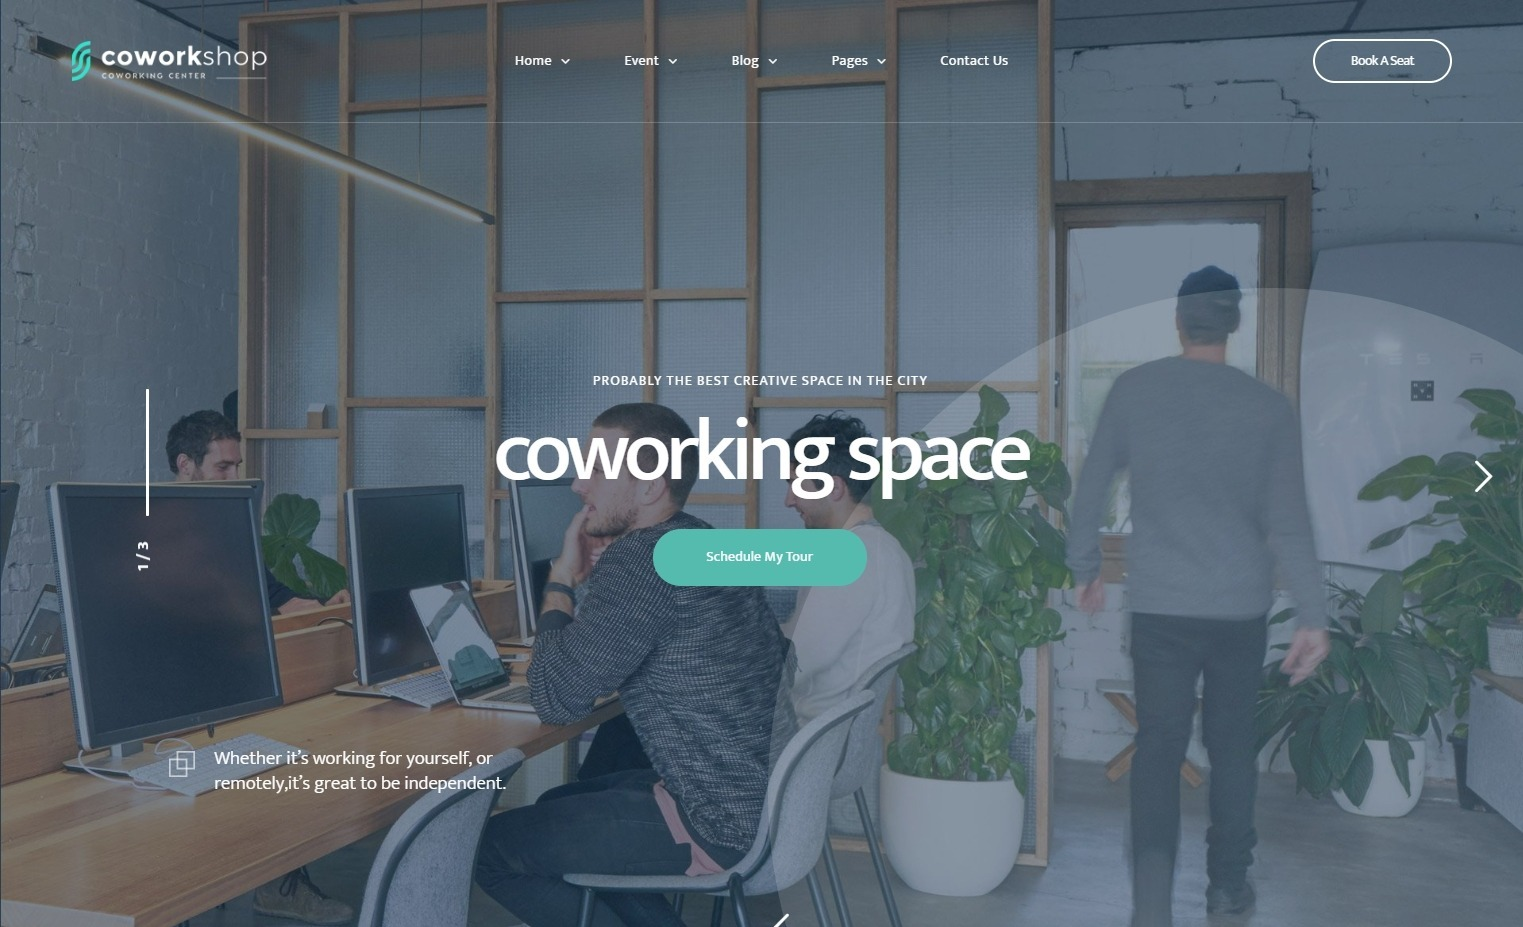 Co Workshop CoWorking Theme for Freelancers and Small Businesses